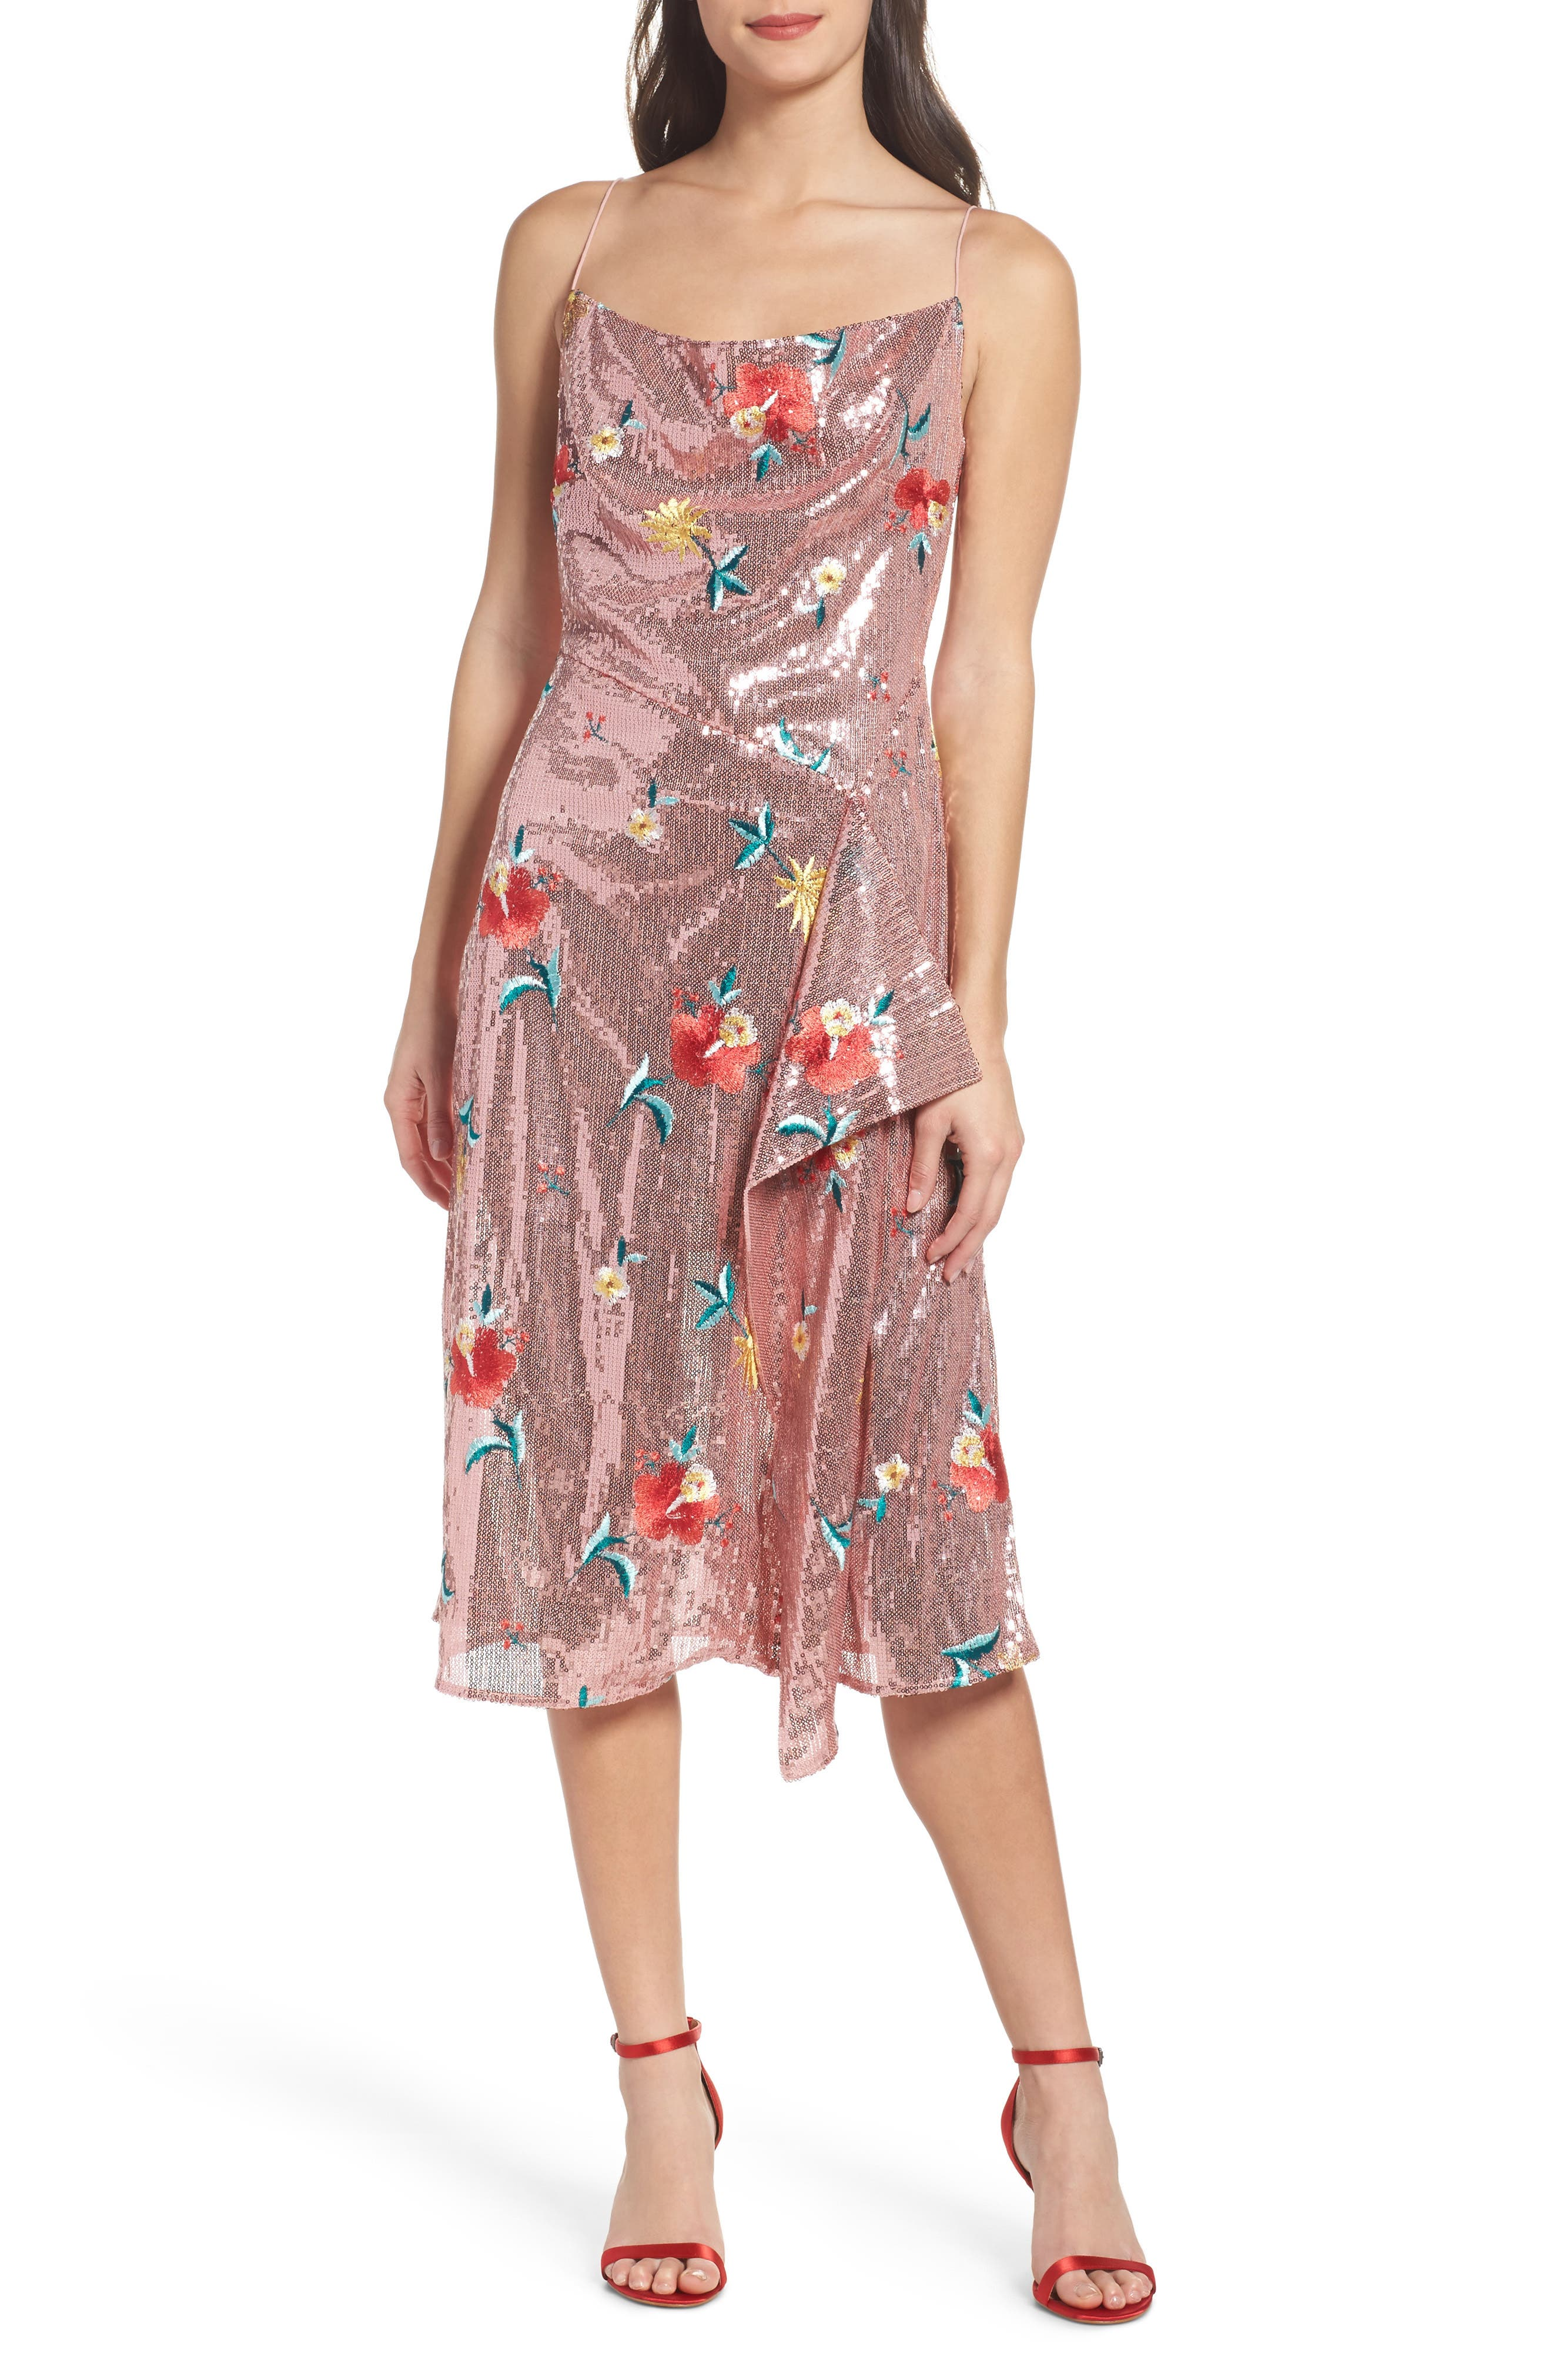 Fullproof Embroidered Sequin Dress,                         Main,                         color, Rose